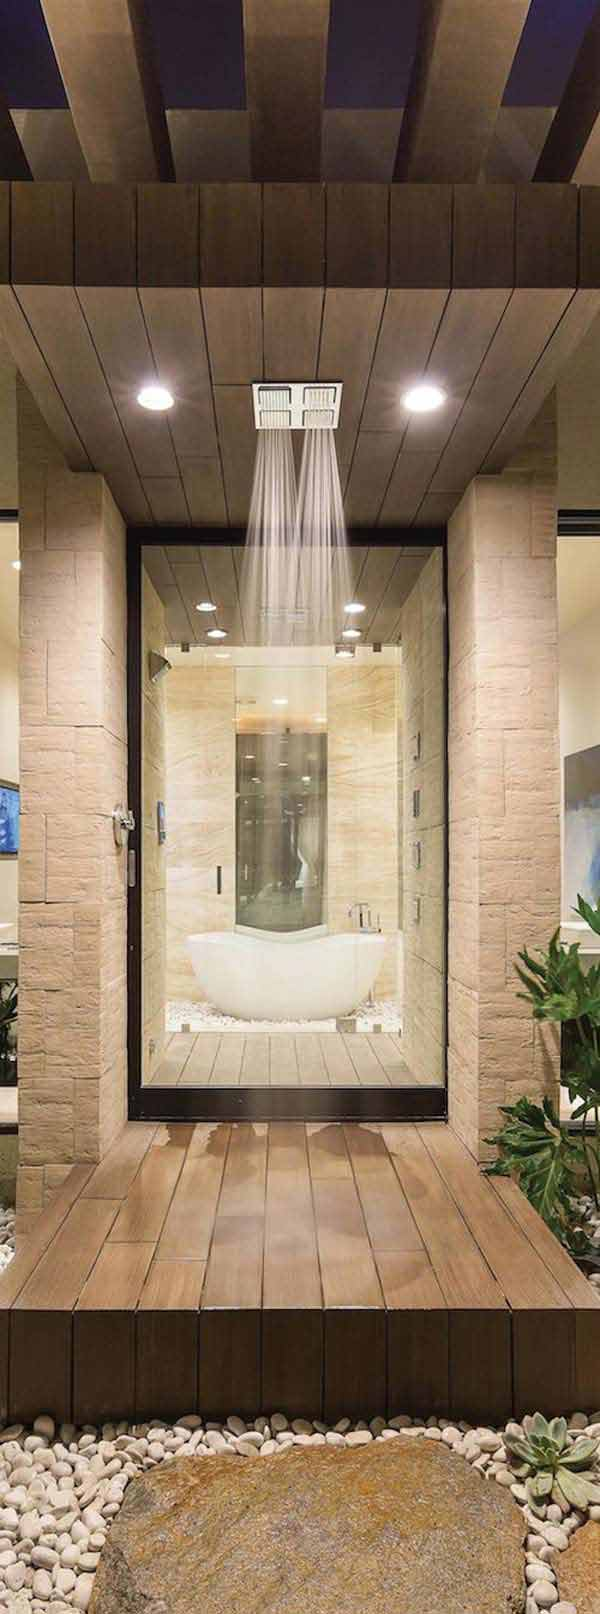 AD-Rain-Showers-Bathroom-Ideas-23